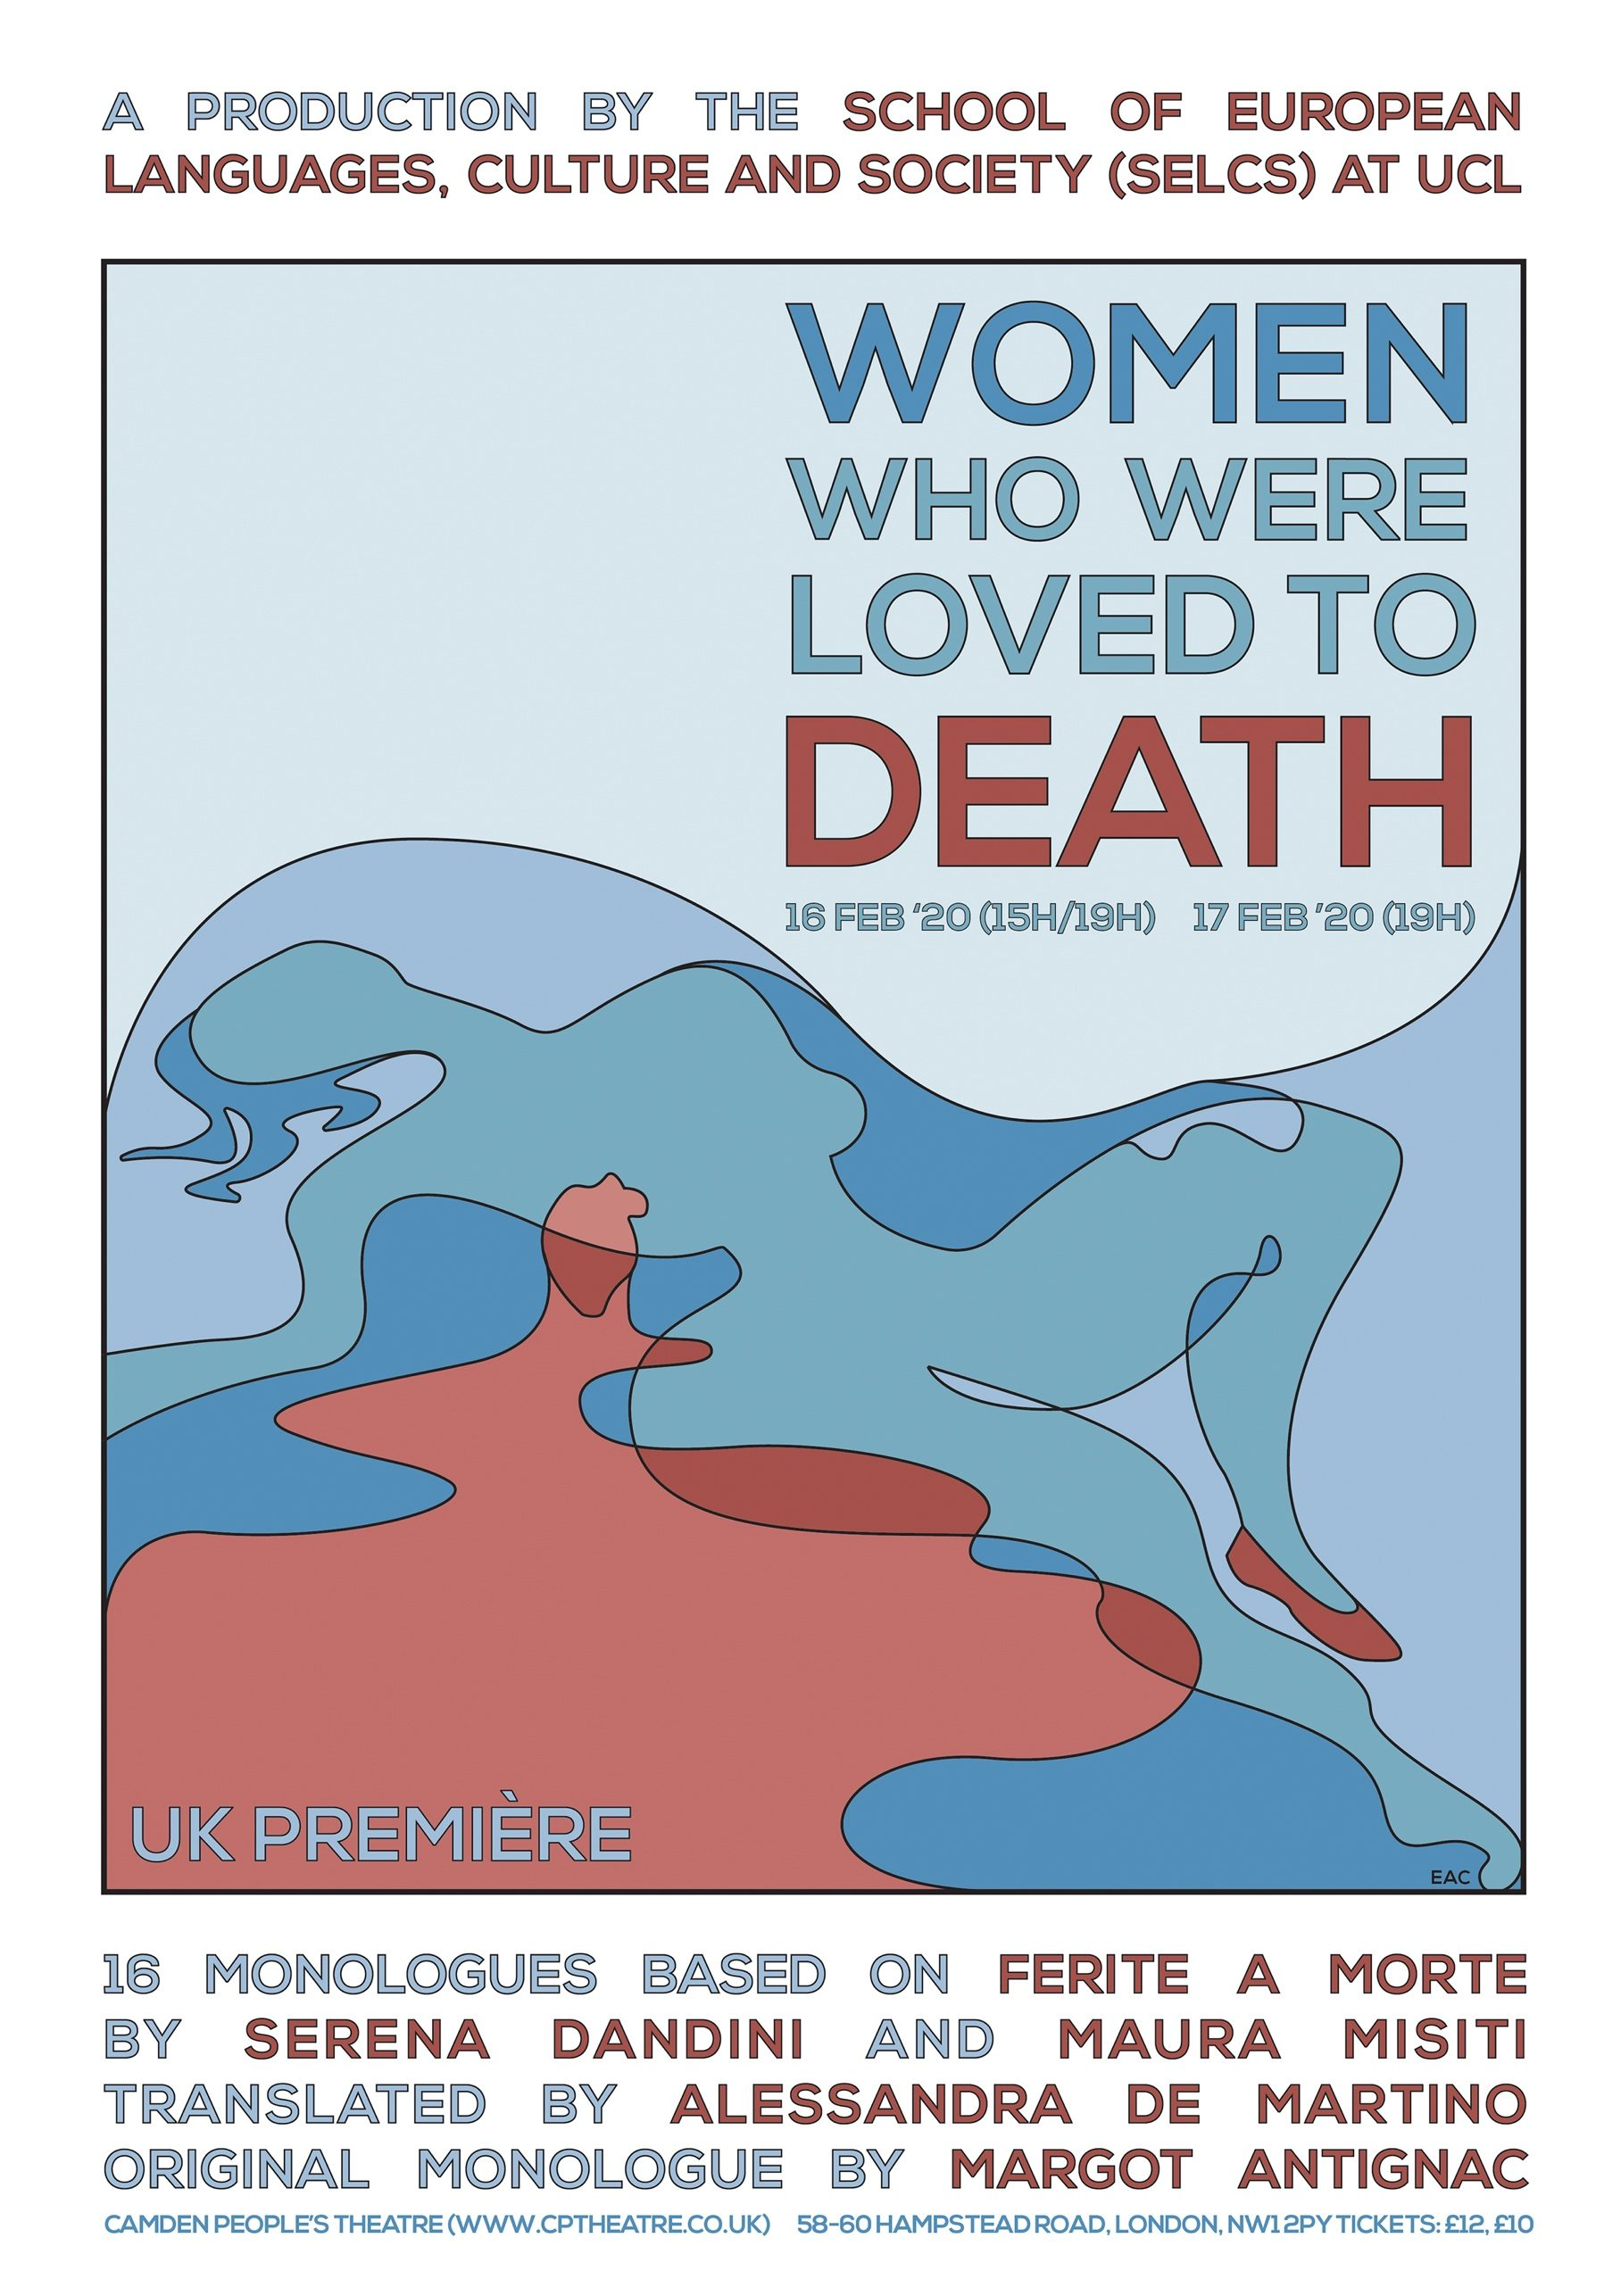 WOMEN WHO WERE LOVE TO DEATH -presented by UCL European Theatre Project